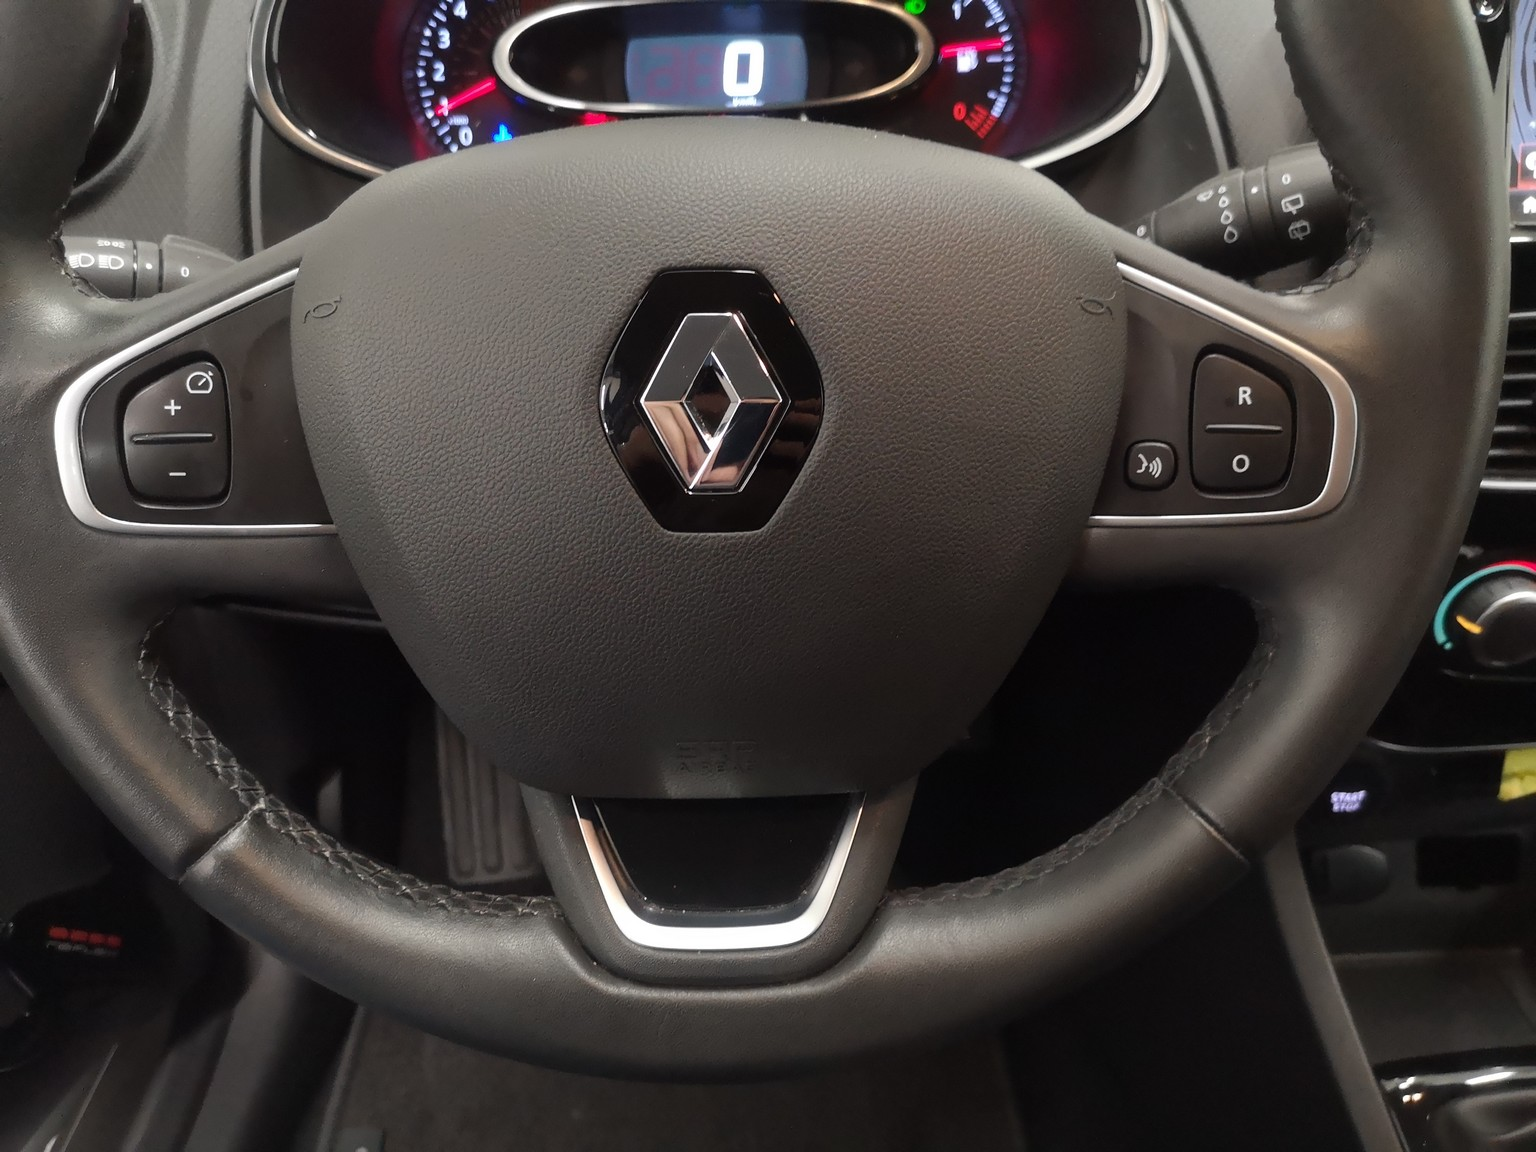 RENAULT CLIO IV BUSINESS 2017 à 9500 € - Photo n°13